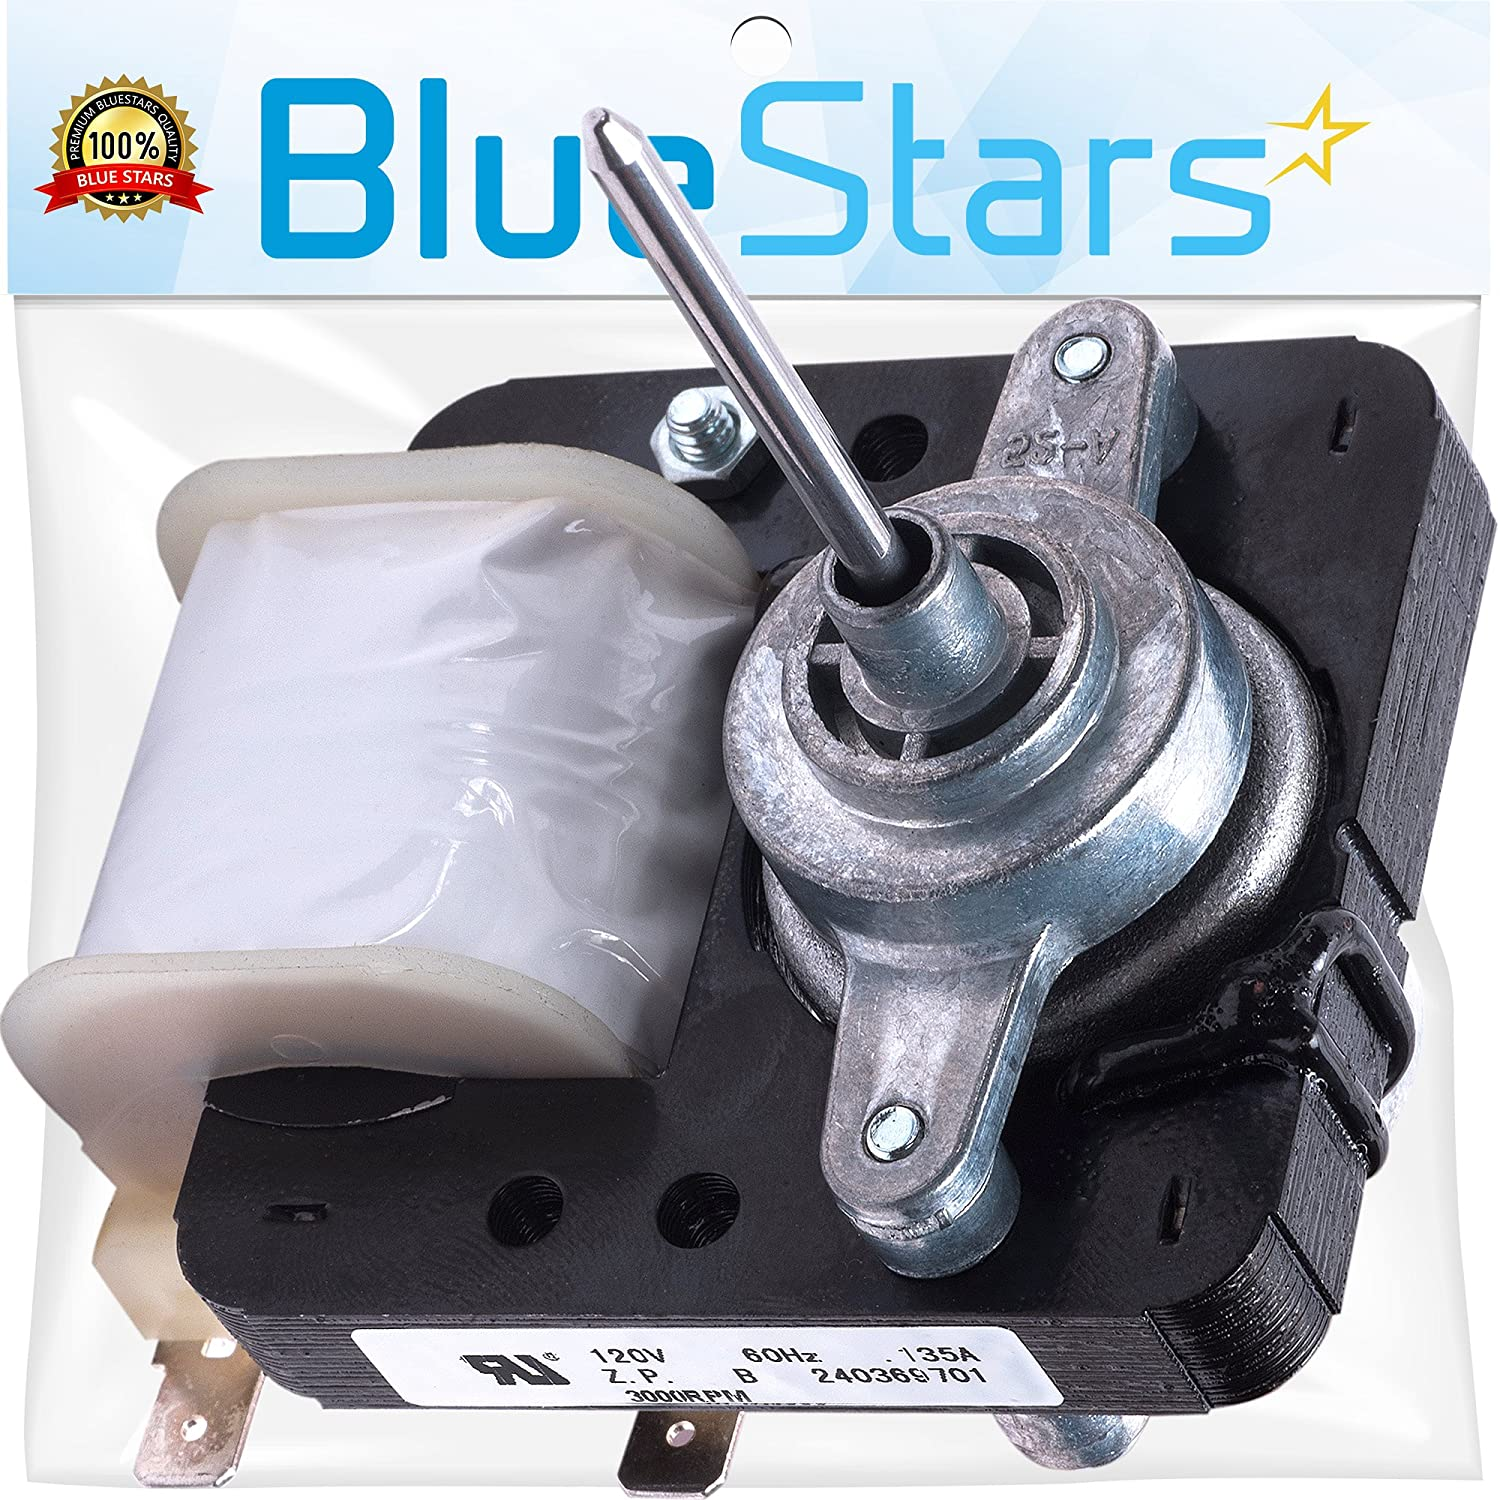 Ultra Durable 240369701 Refrigerator Evaporator Fan Motor Replacement part by Blue Stars - Exact Fit for Frigidaire Kenmore Electrolux fridges - Replaces AP4700070, PS3419839, 5303918549